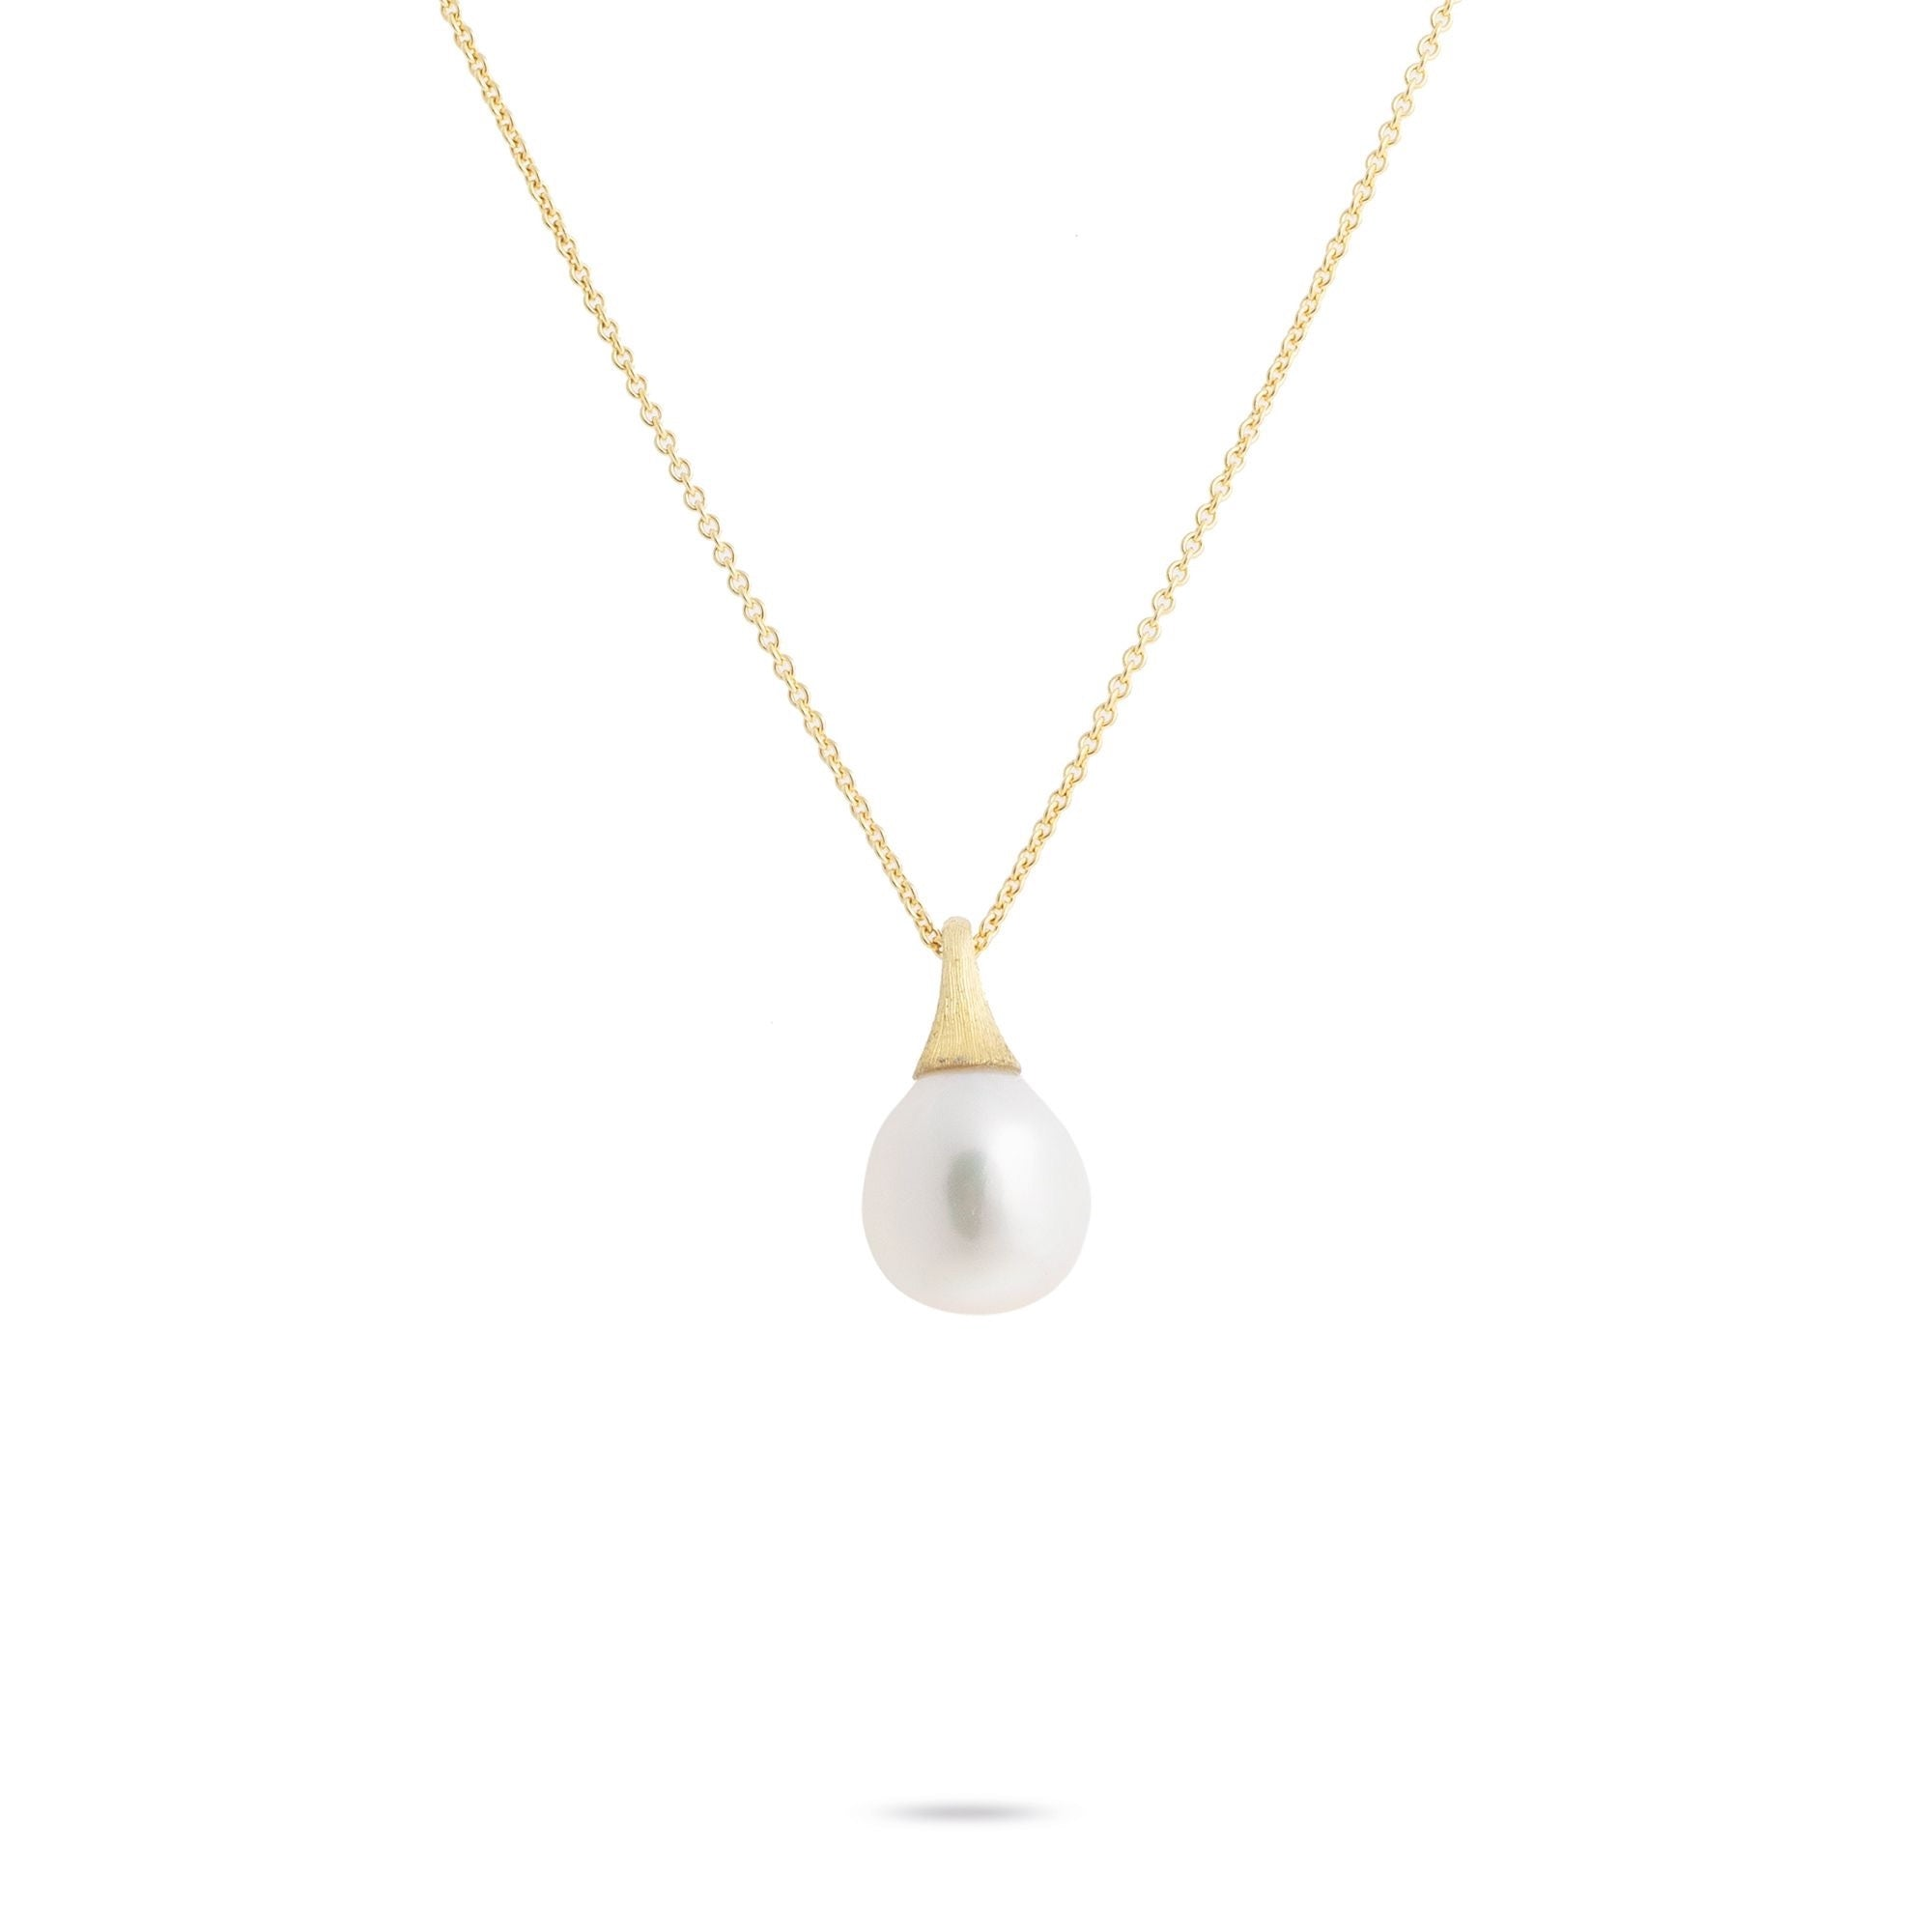 Africa Boule 18K Yellow Gold and Pearl Pendant